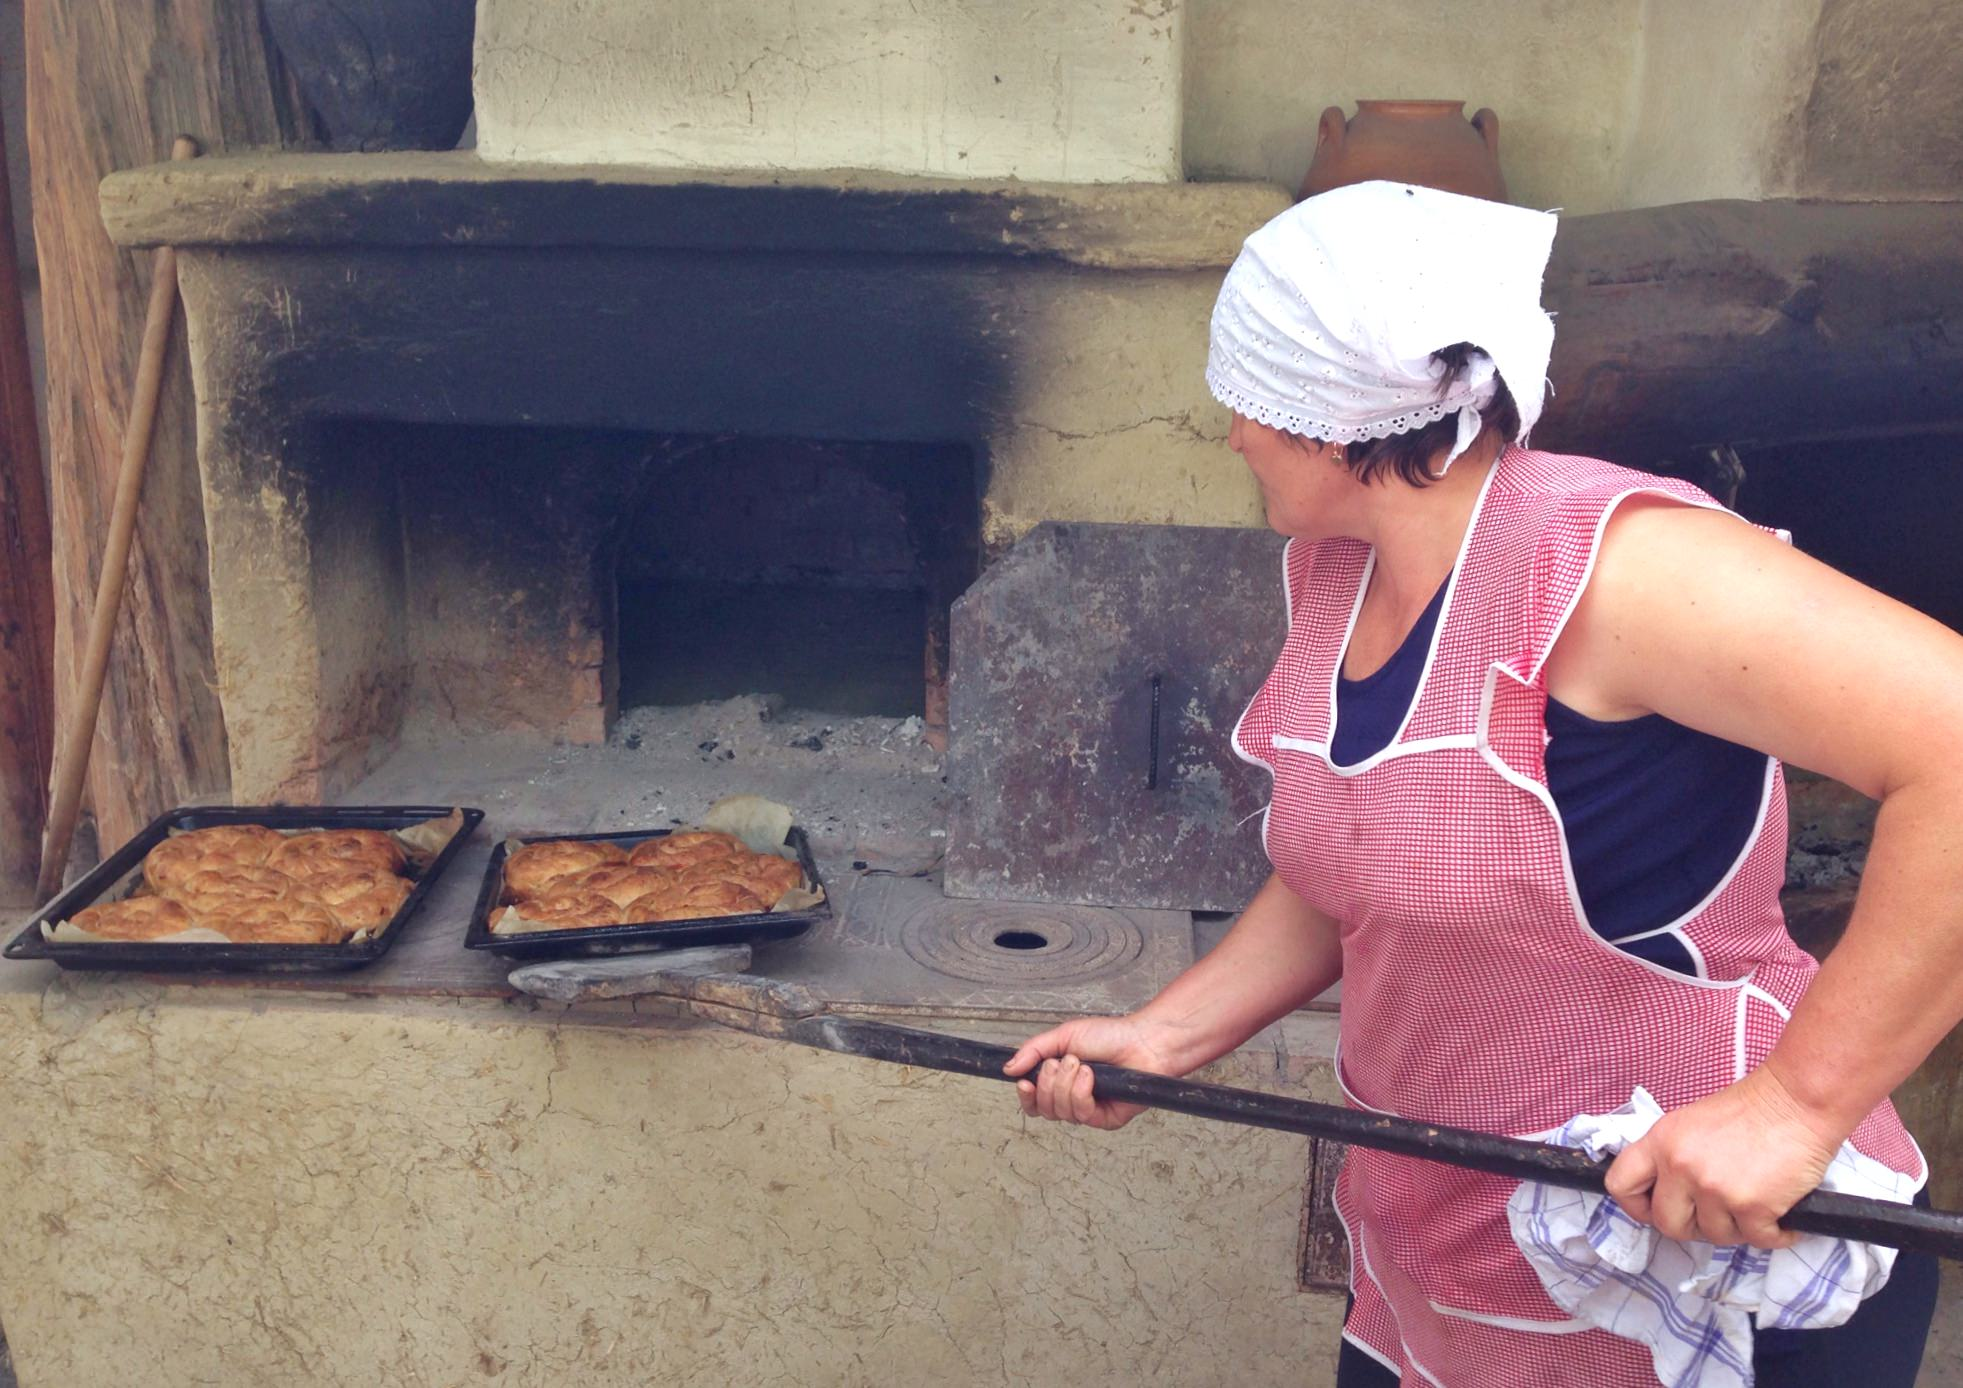 If you stay at Butuceni, you'll have the chance to try your hand at making traditional food.